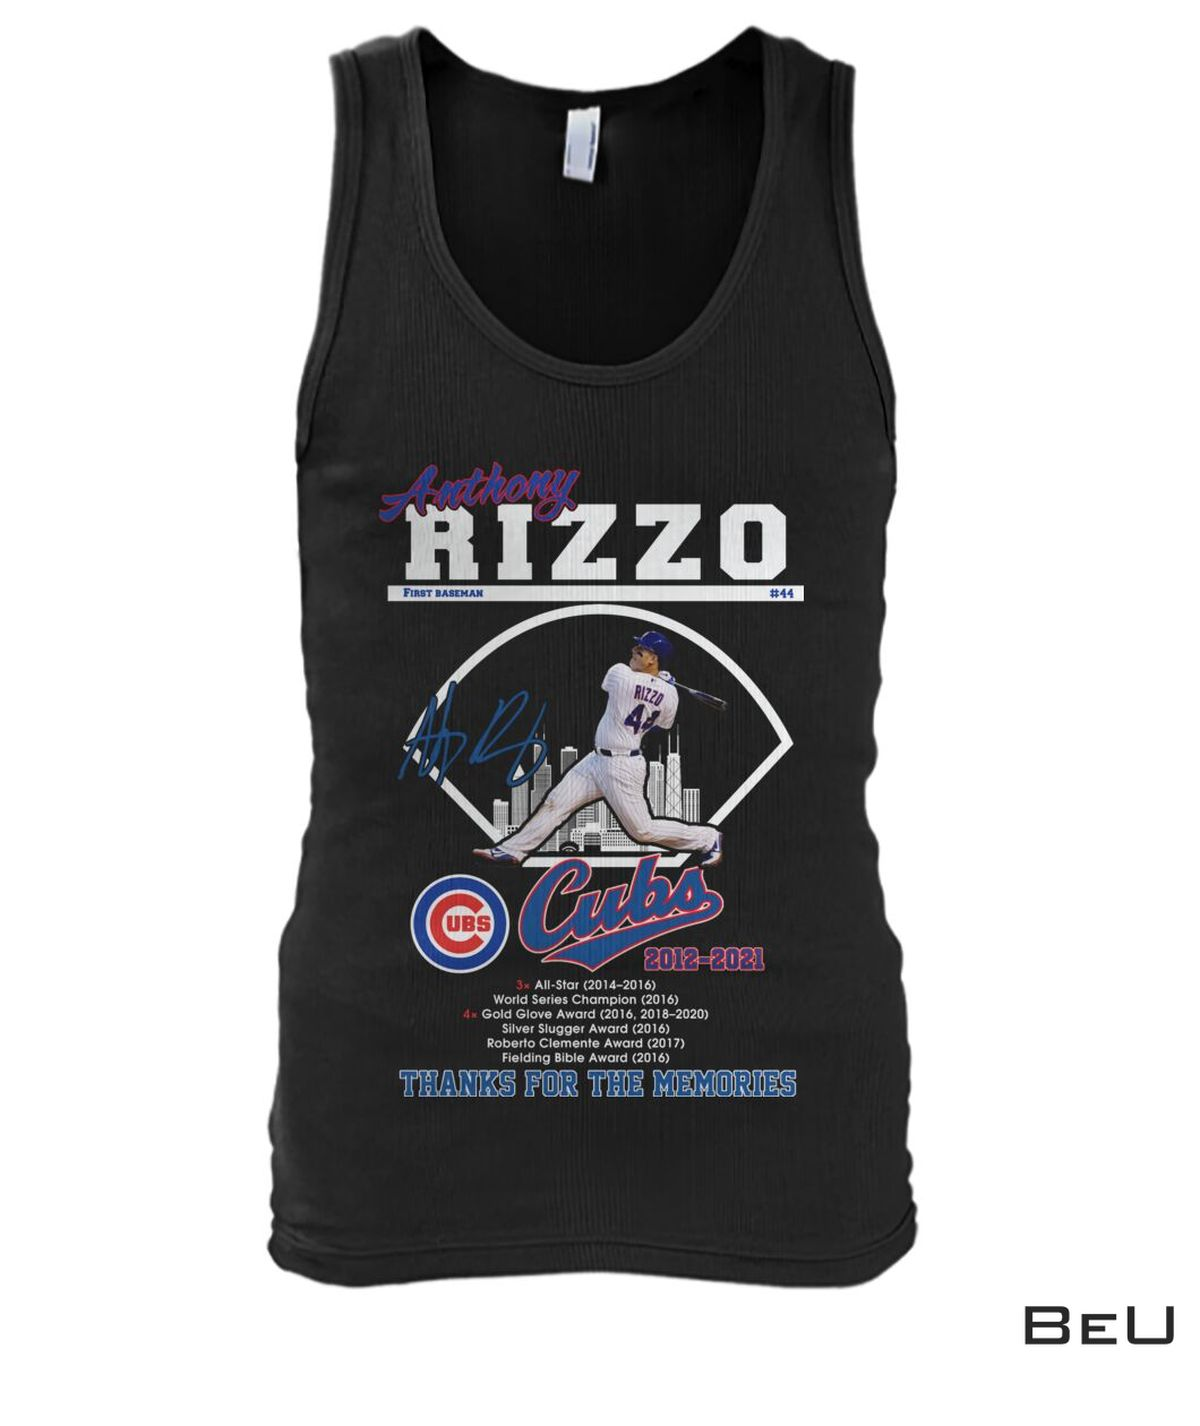 Anthony Rizzo First Baseman Chicago Cubs Thank You Shirtc